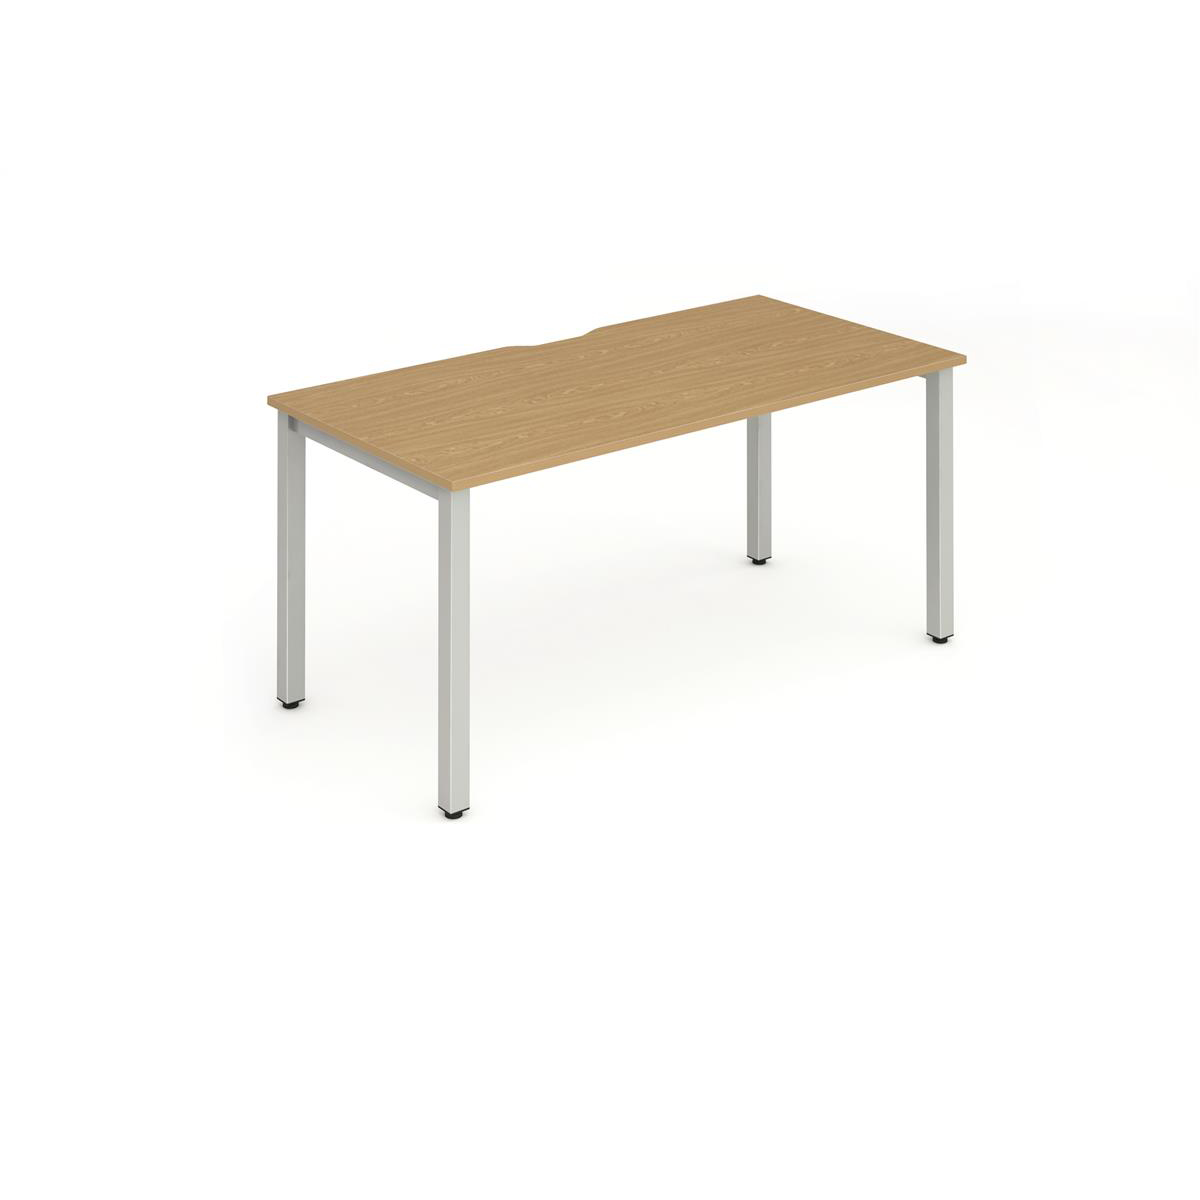 Trexus Bench Desk Individual Silver Leg 1600x800mm Oak Ref BE128